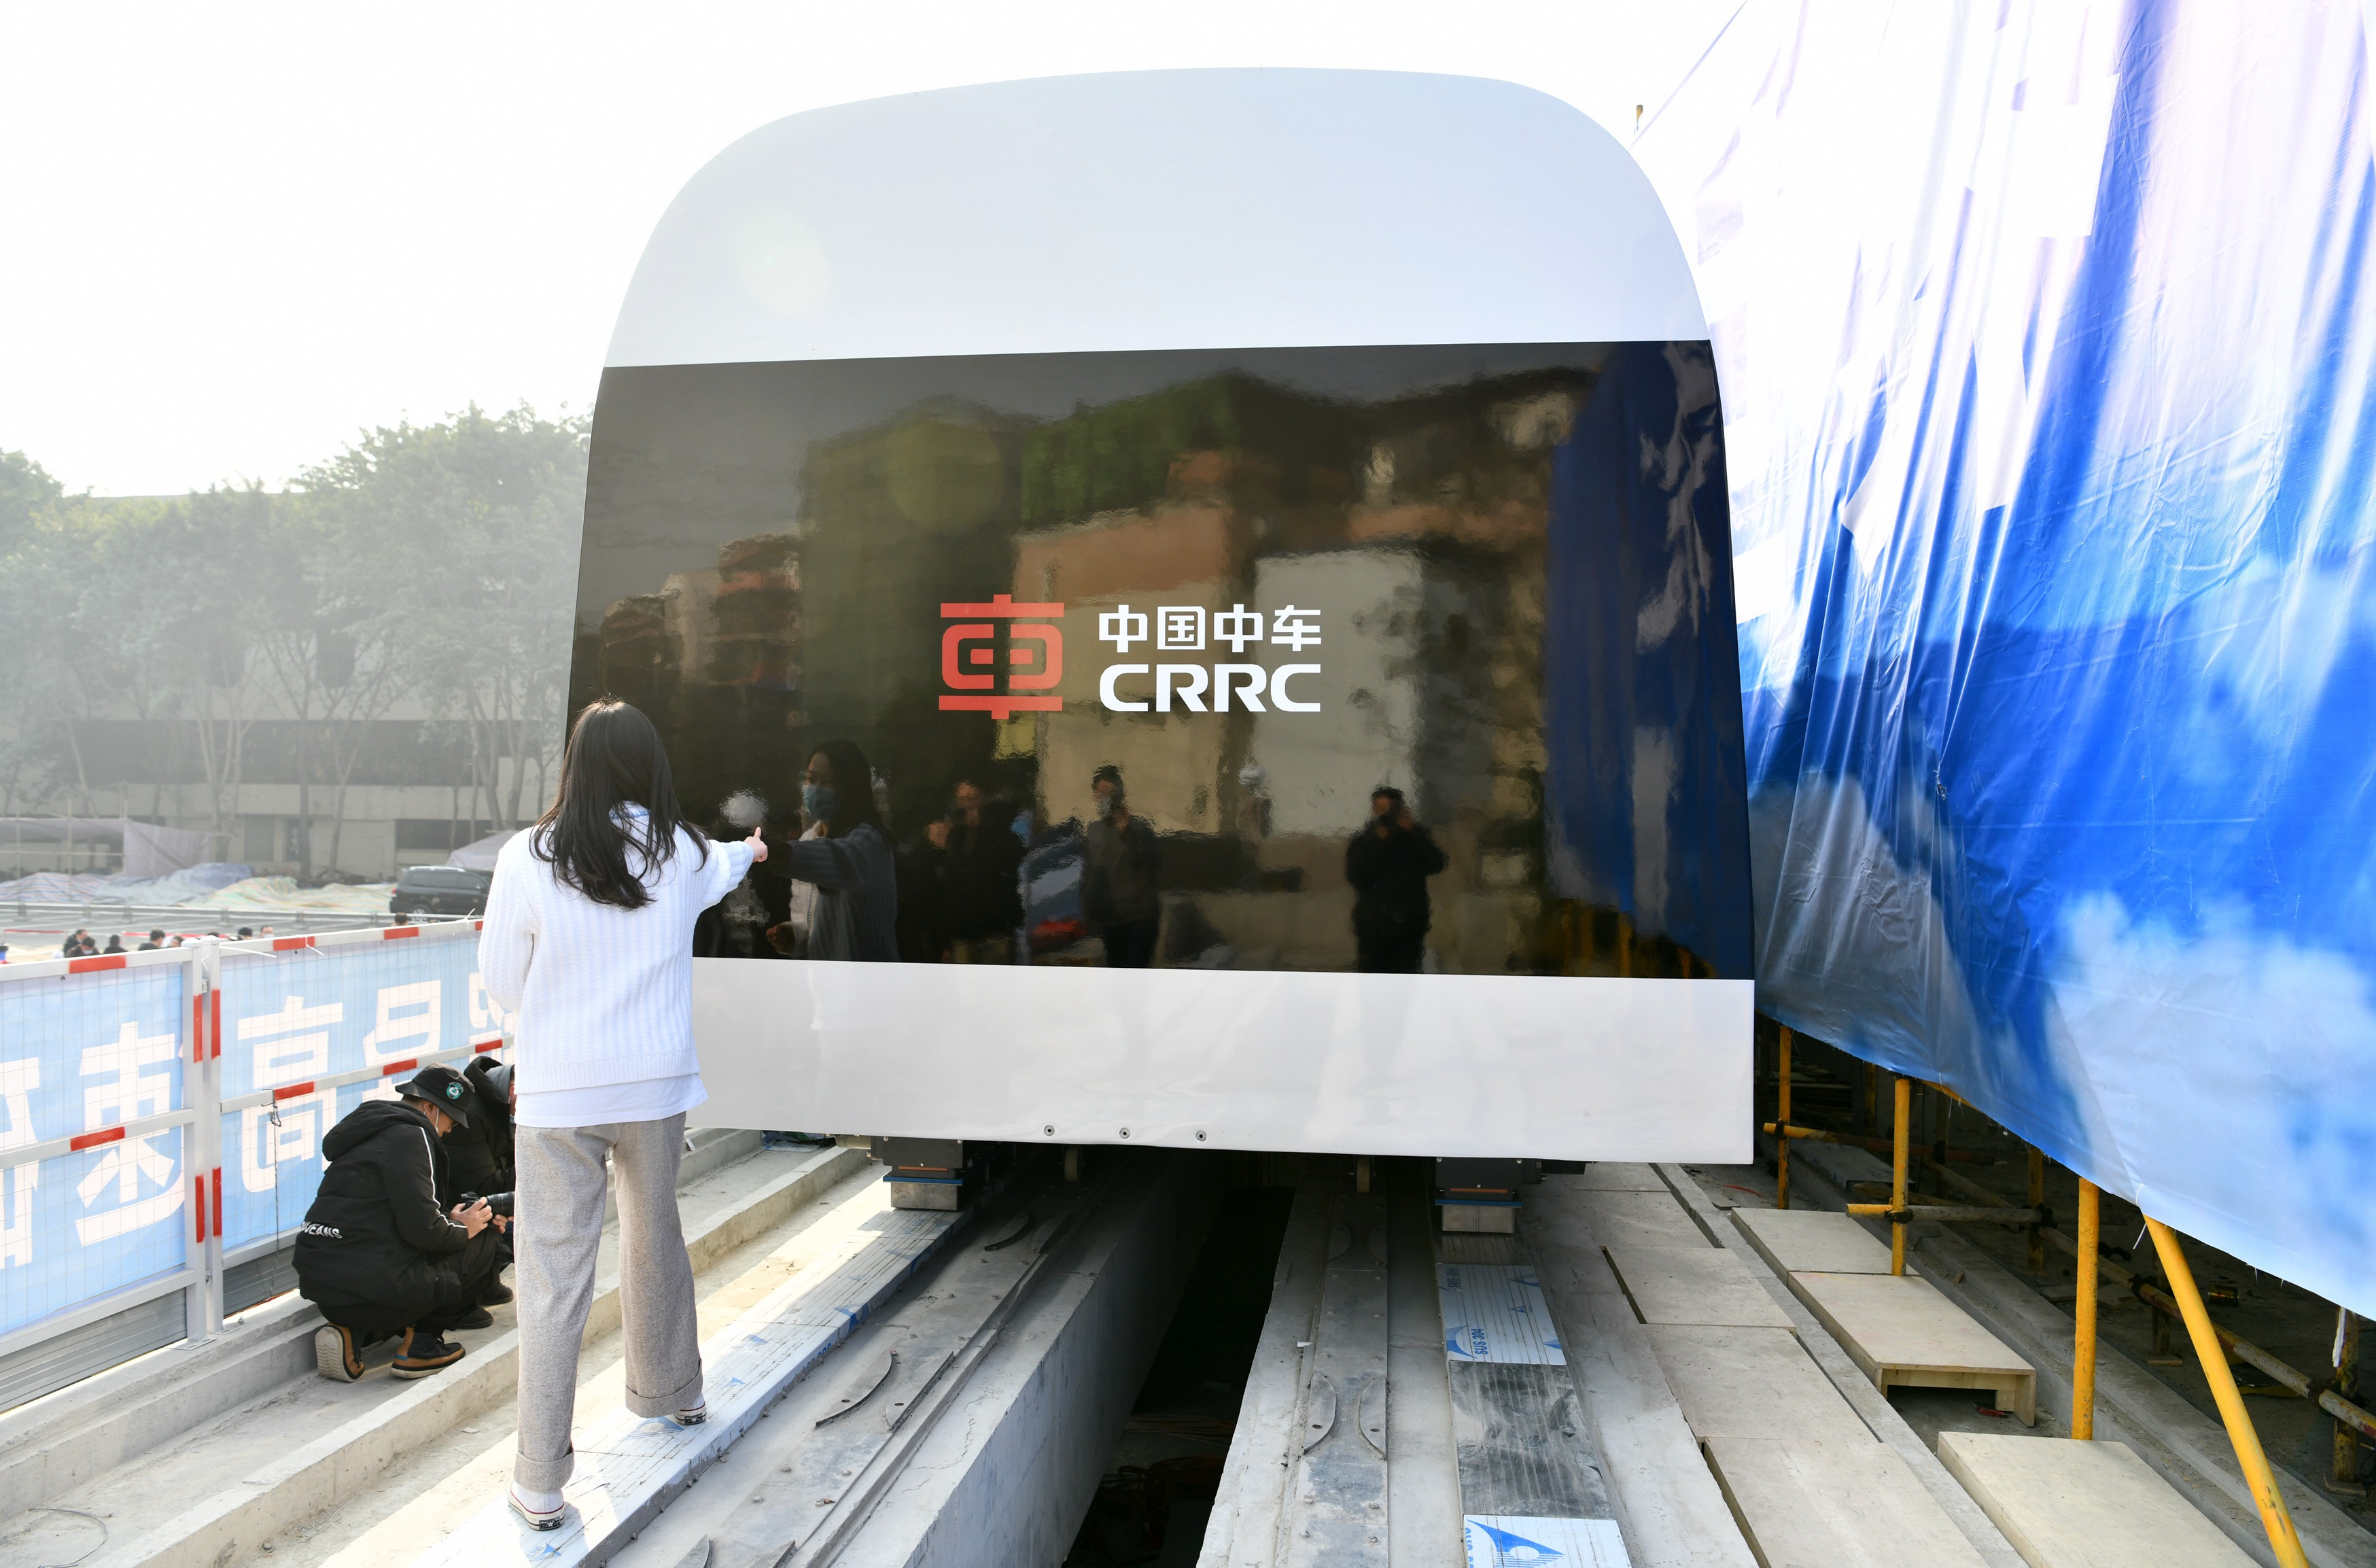 This prototype could be the future of train travel